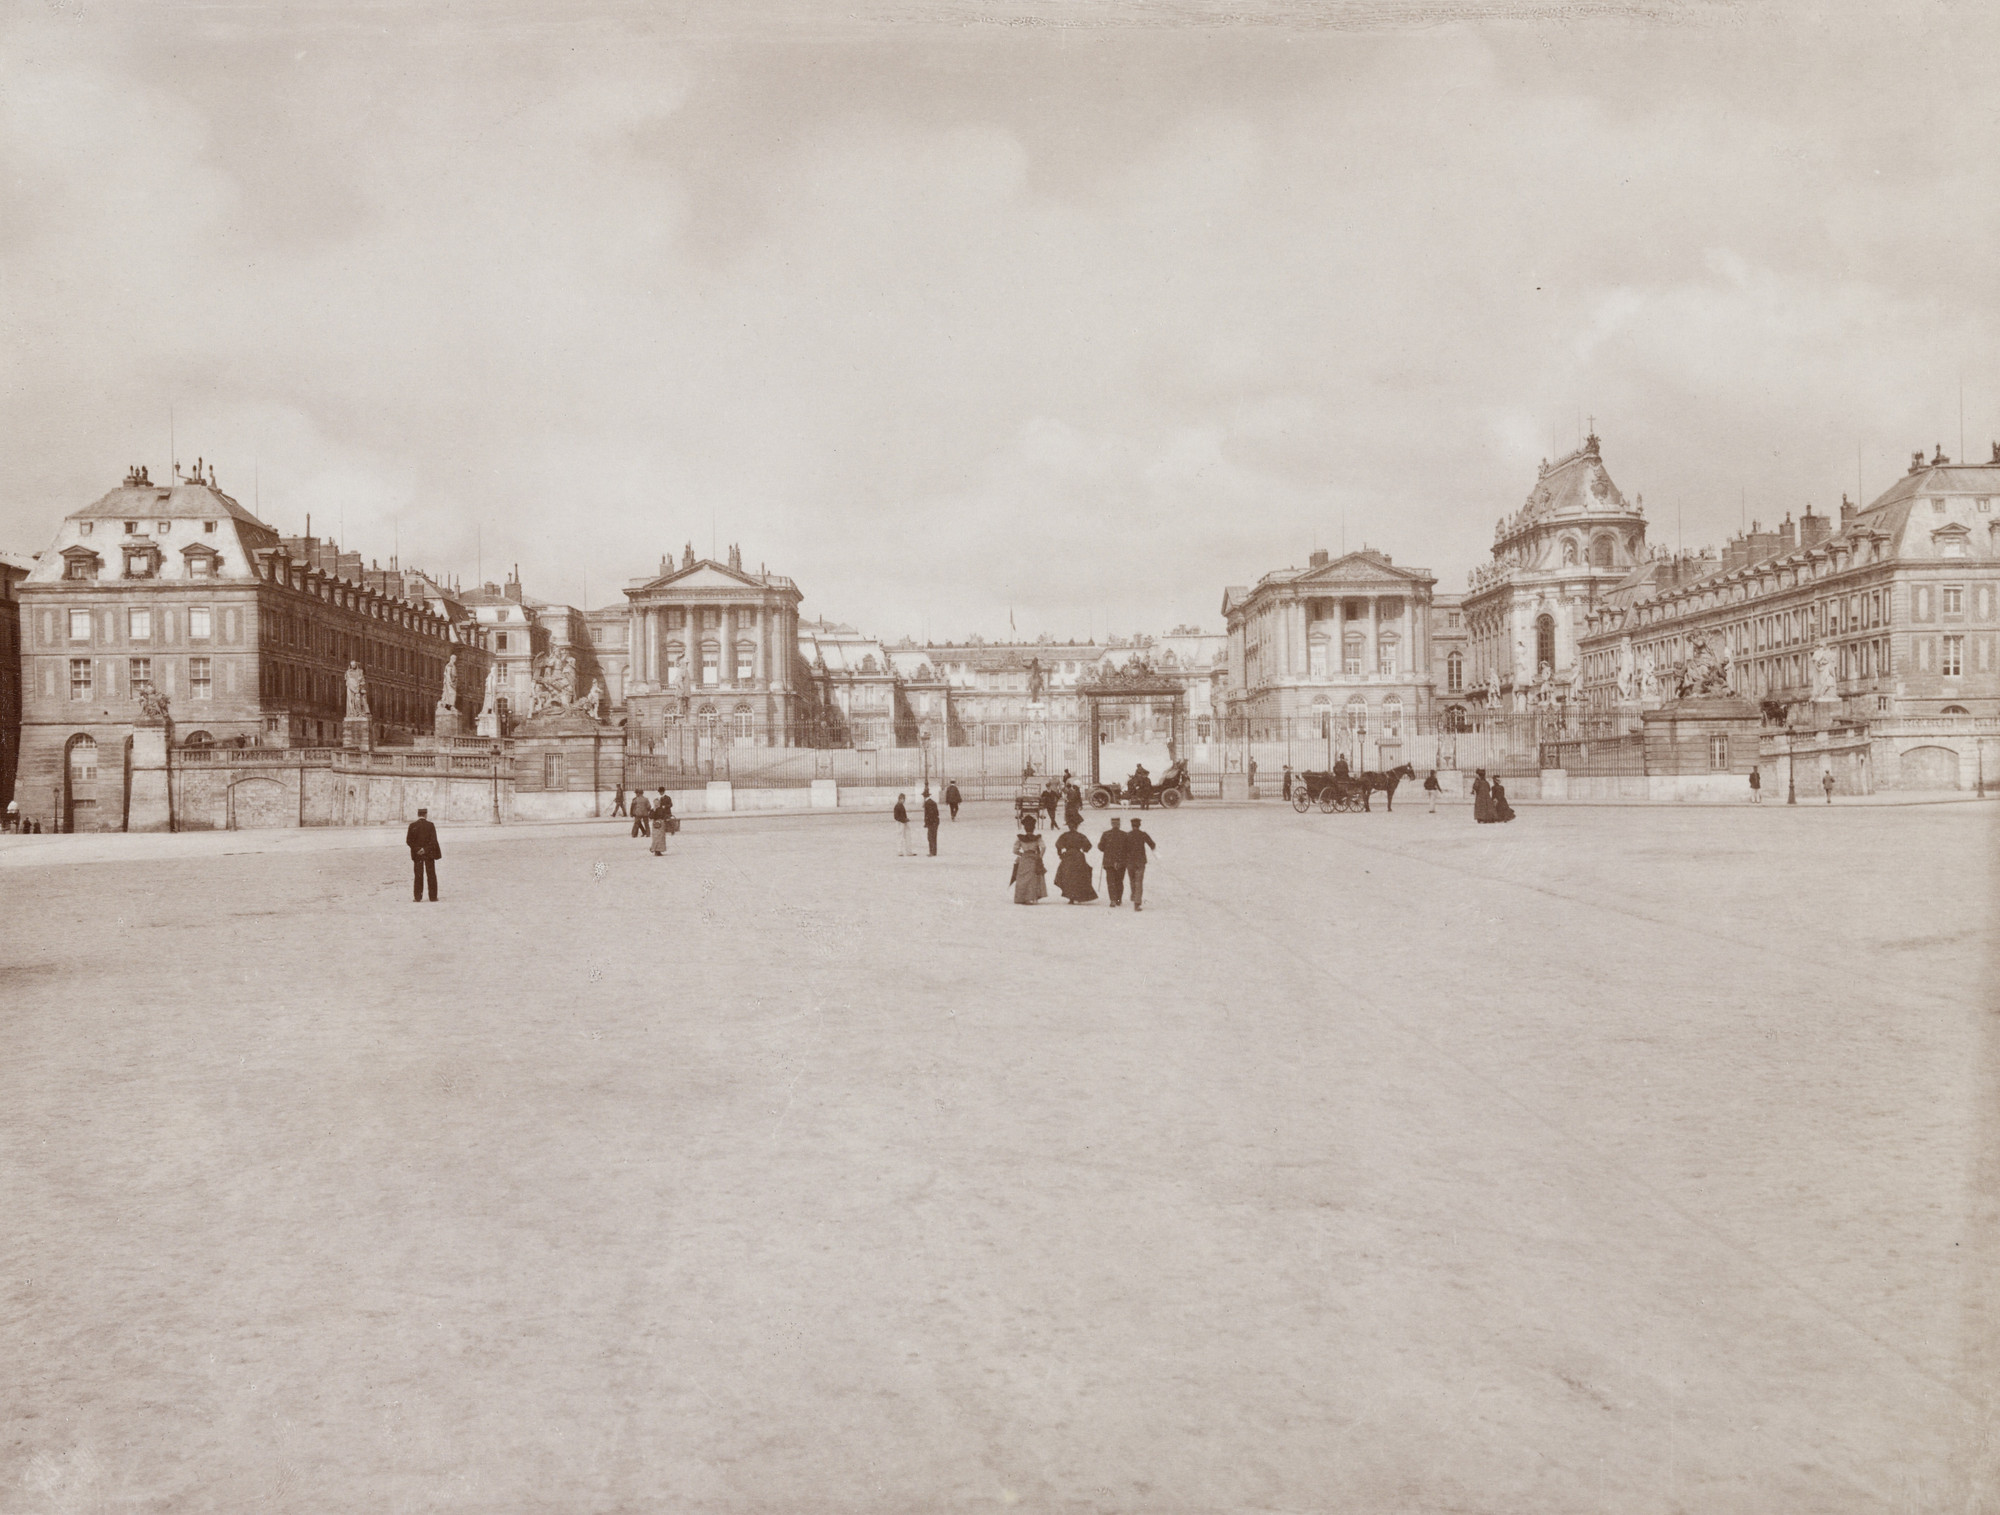 Leopoldo and Guiseppe Alinari. Chateau de Versailles- Panorama. n.d.